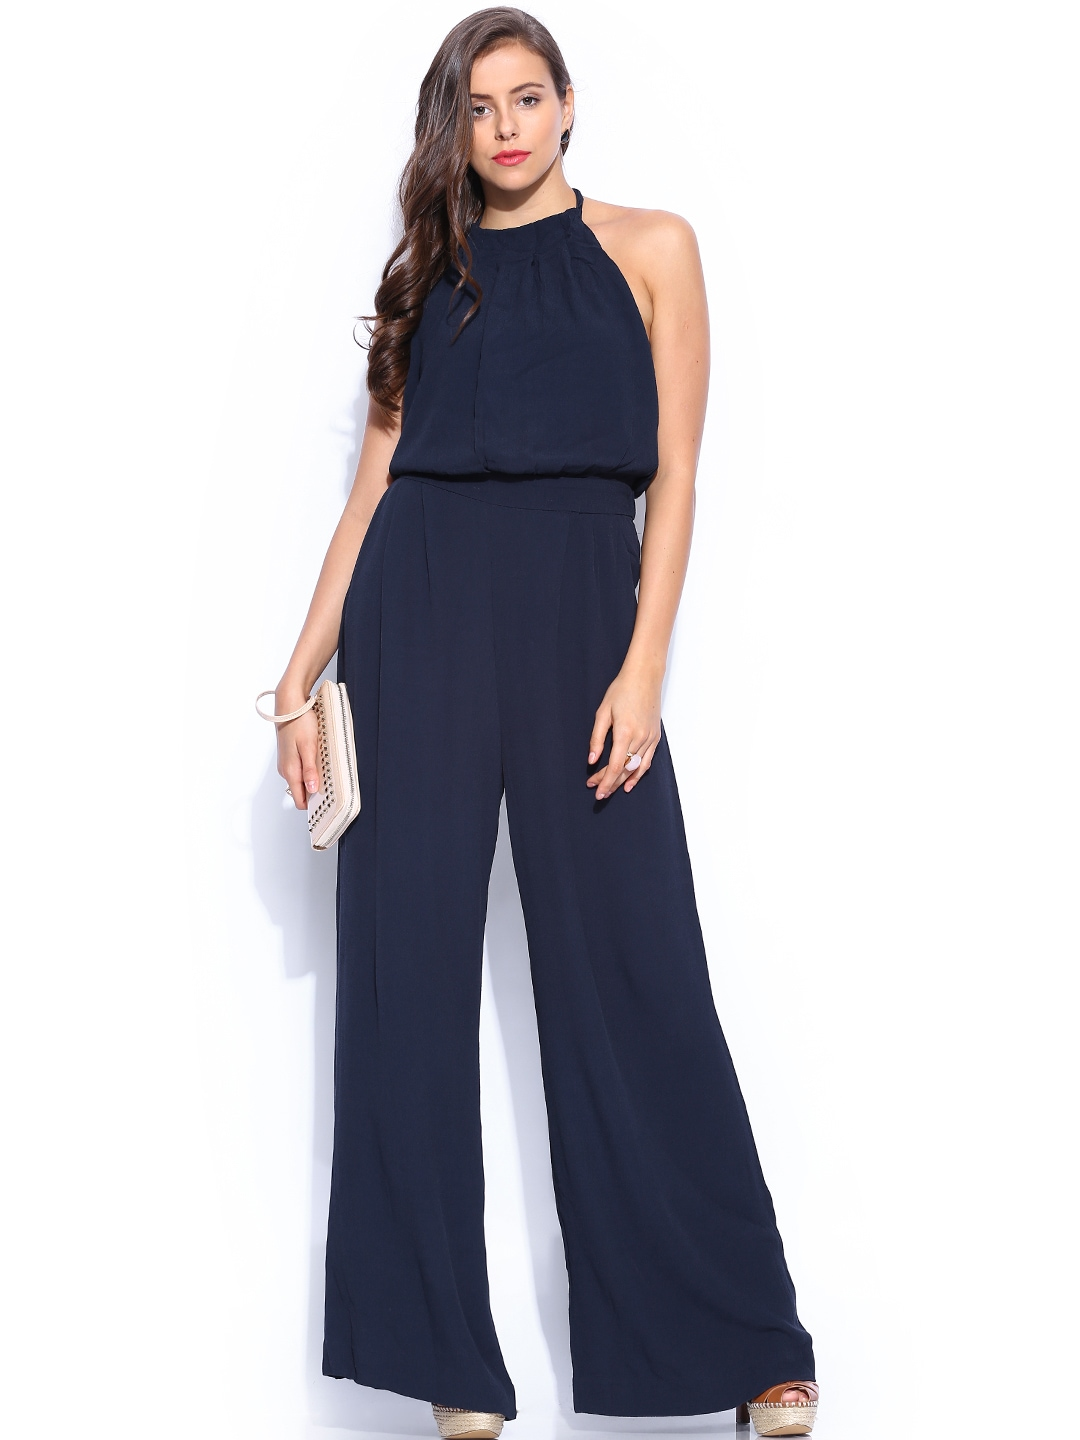 Awesome Navy Jumpsuit